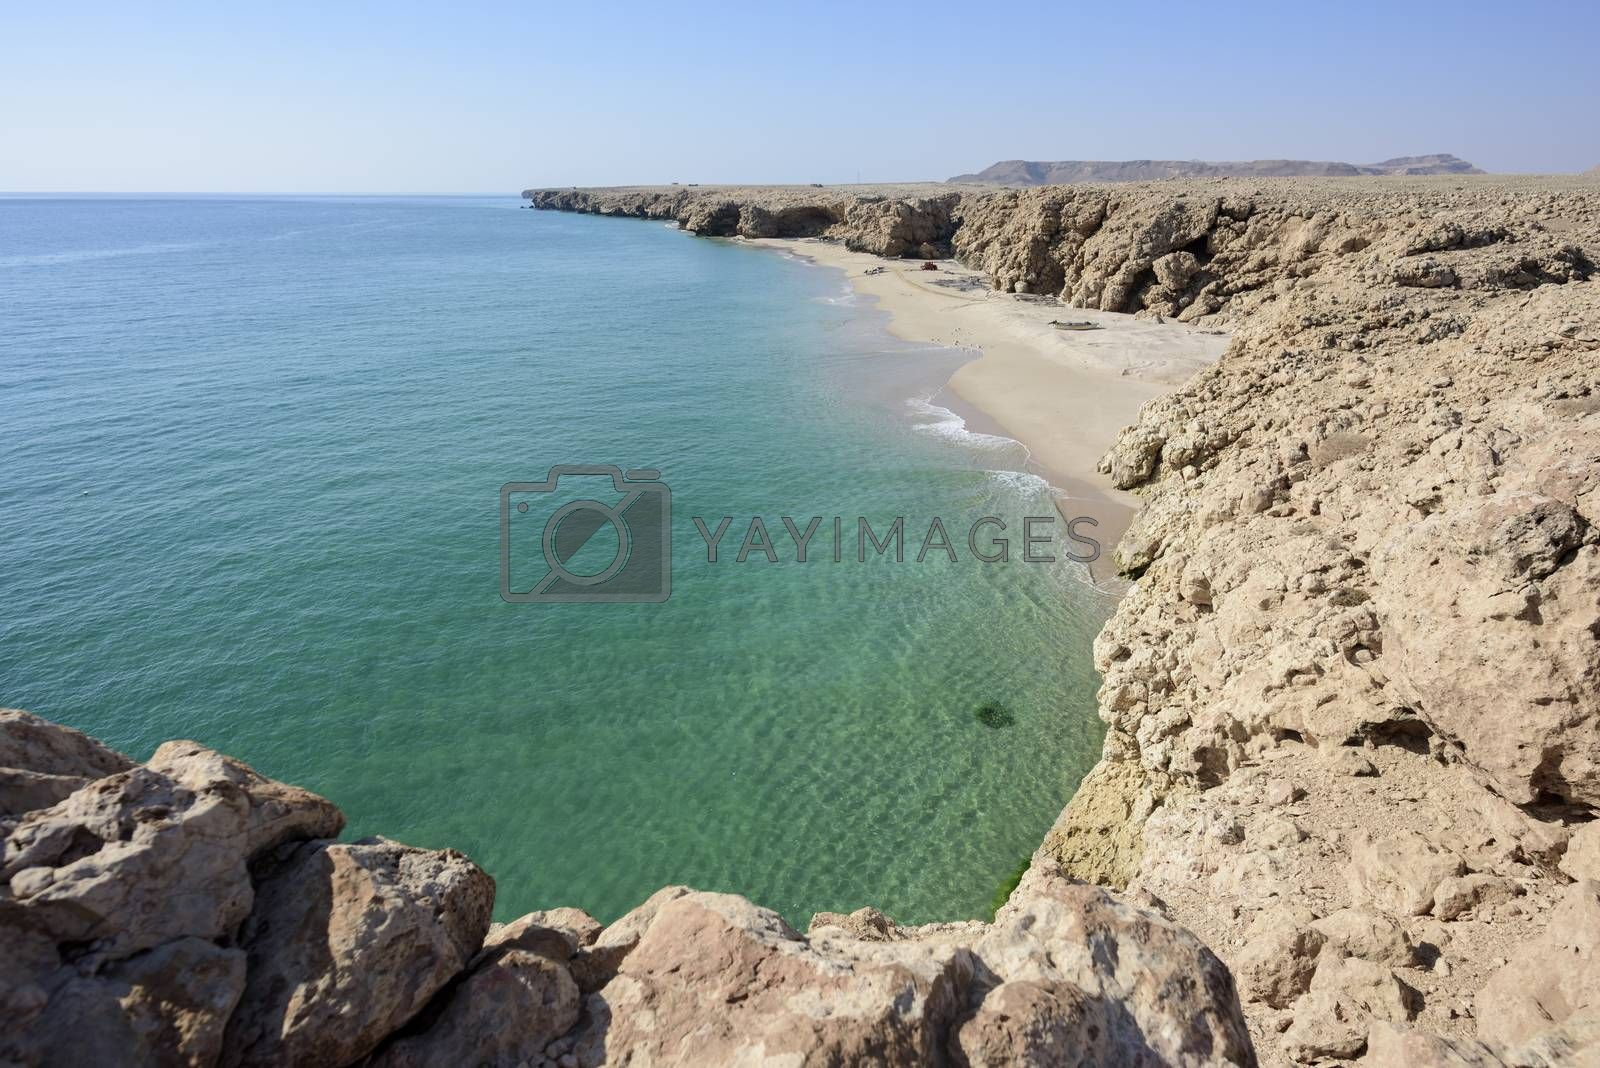 Wild beach at the coat of Ras Al Jinz, Sultanate of Oman. Fishermen of the nearest village use it as a fish harbor